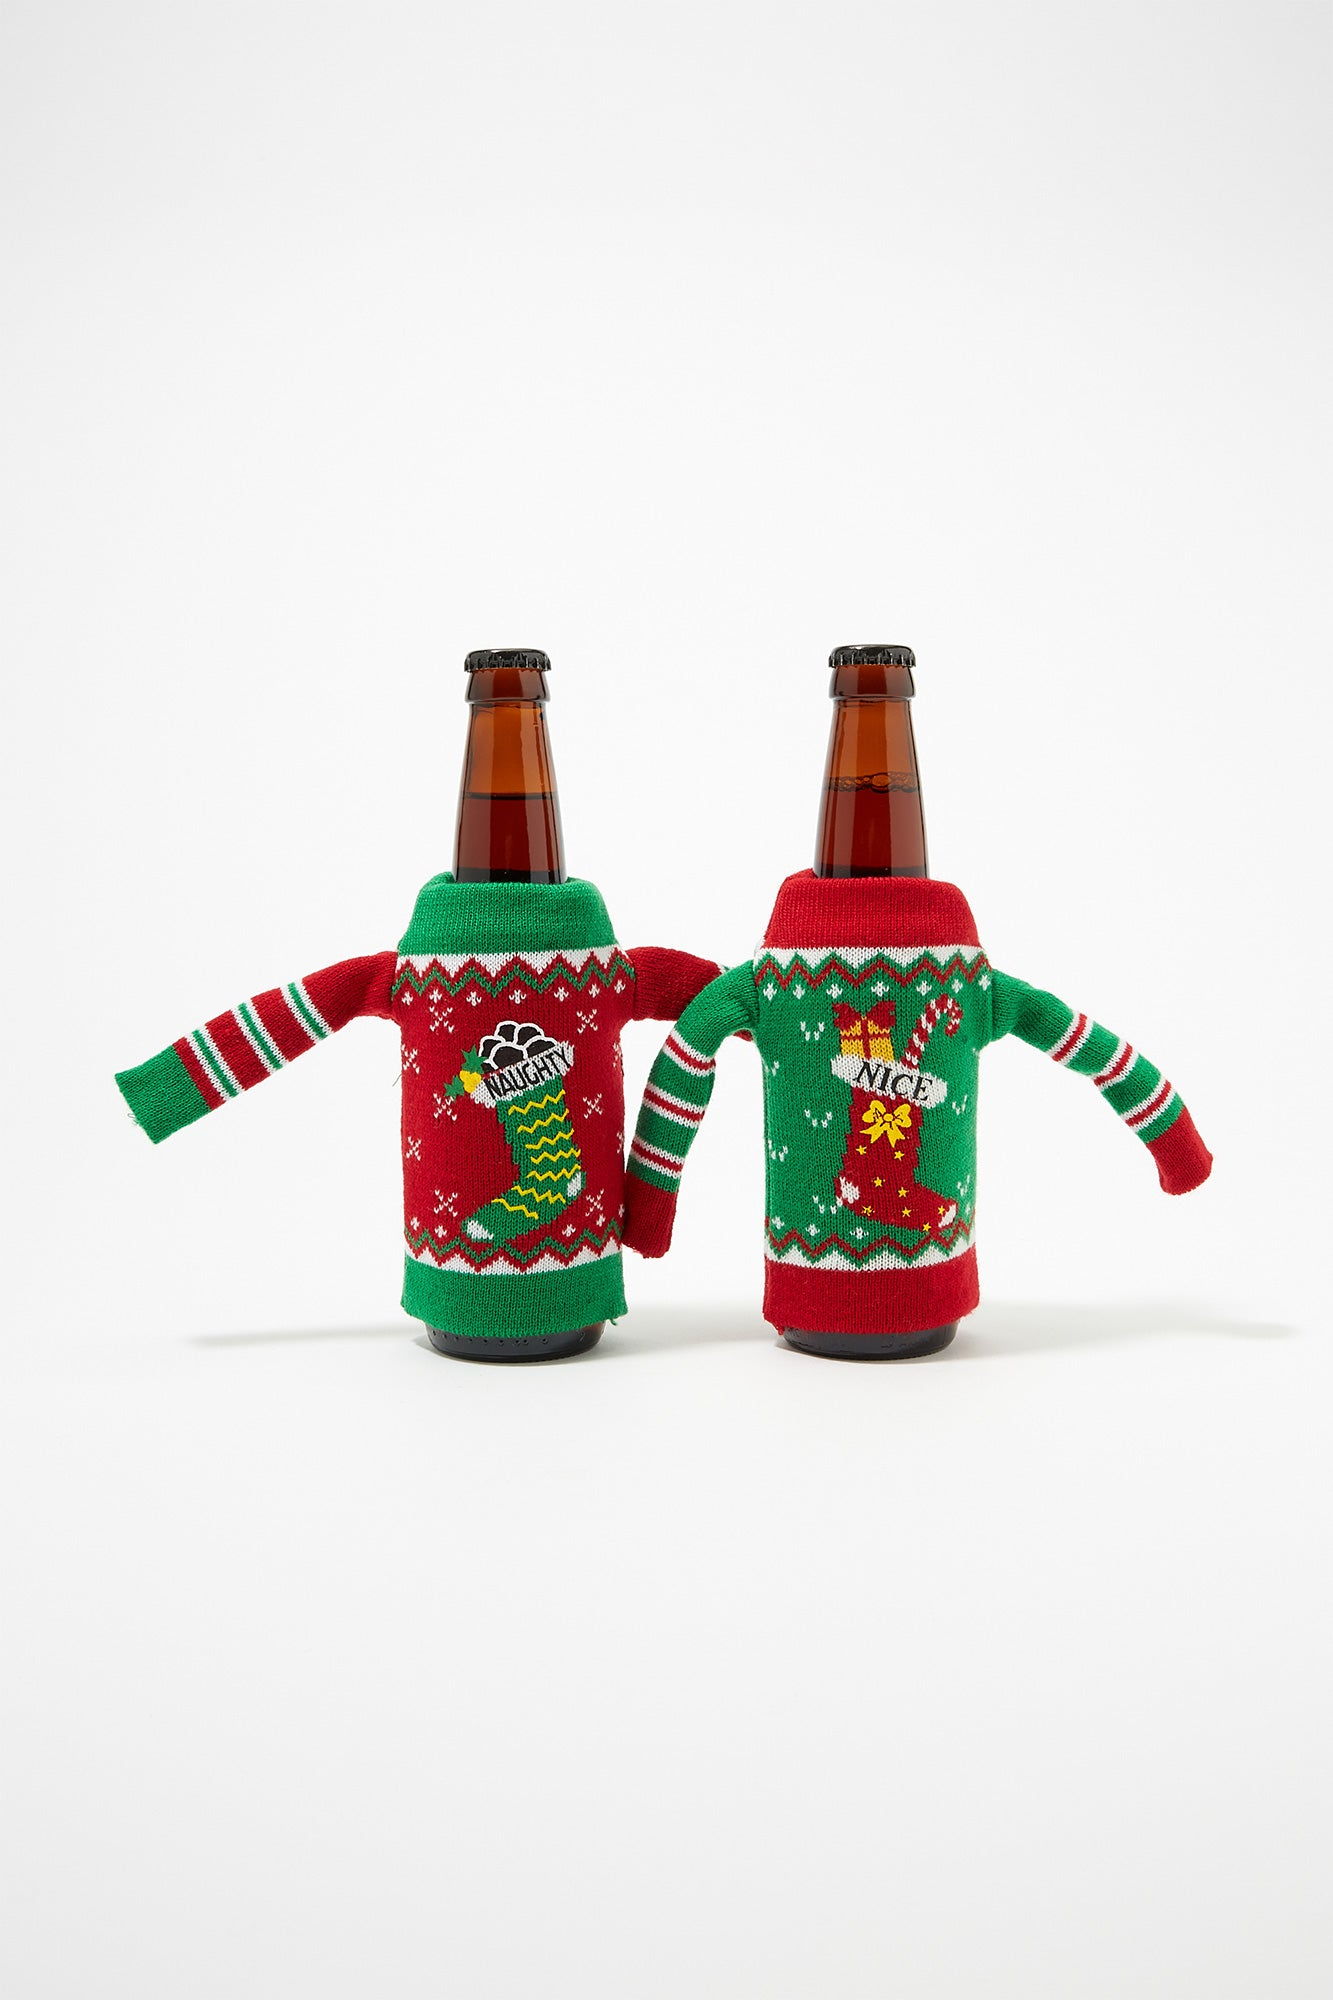 Beer Bottle Christmas Kozie